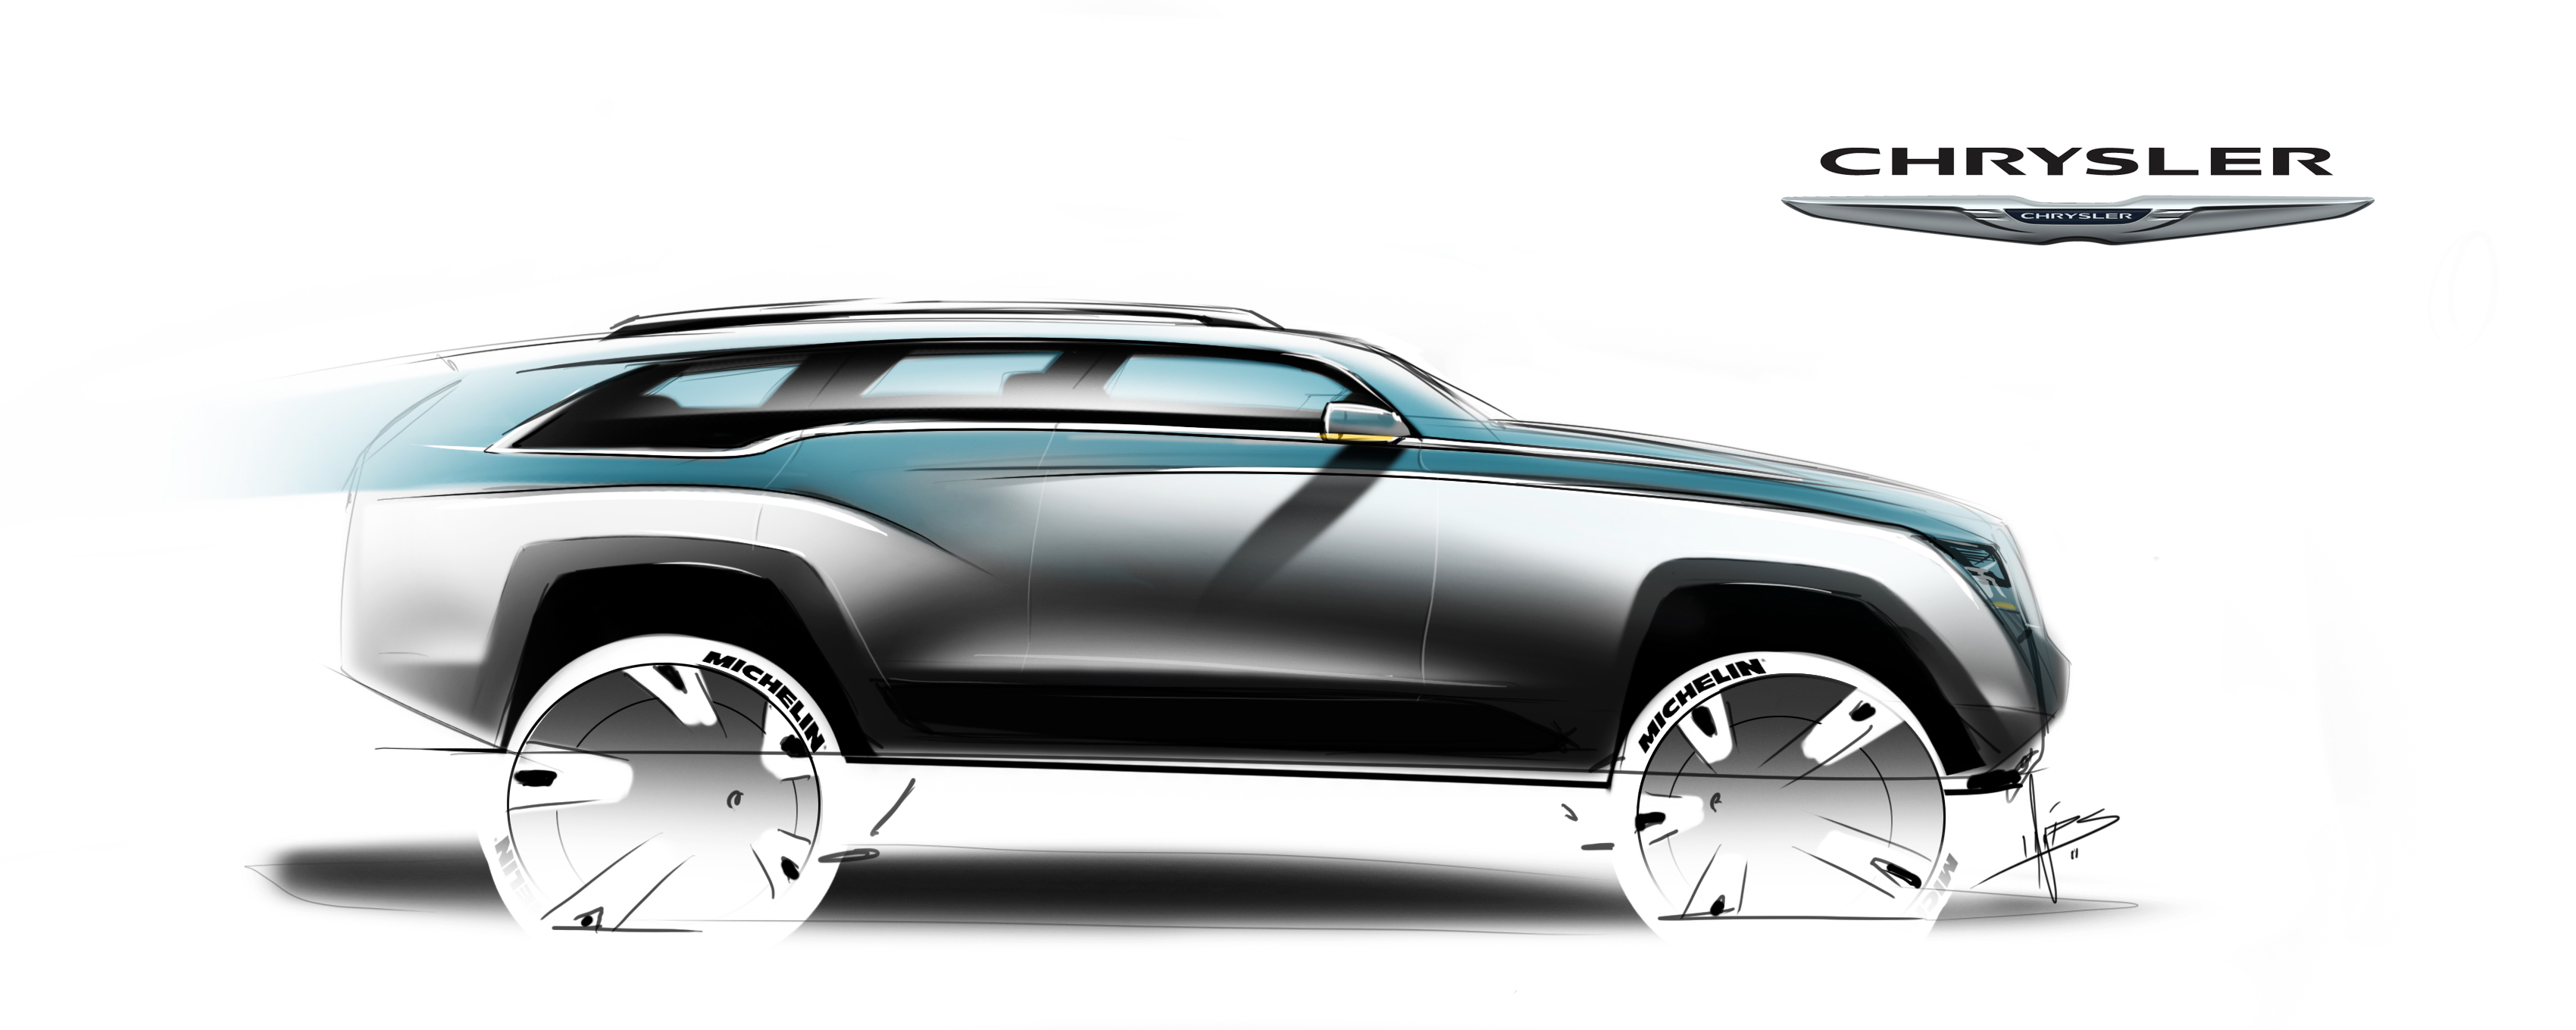 Automotive Renderings By Tristan Hipps At Coroflot Com